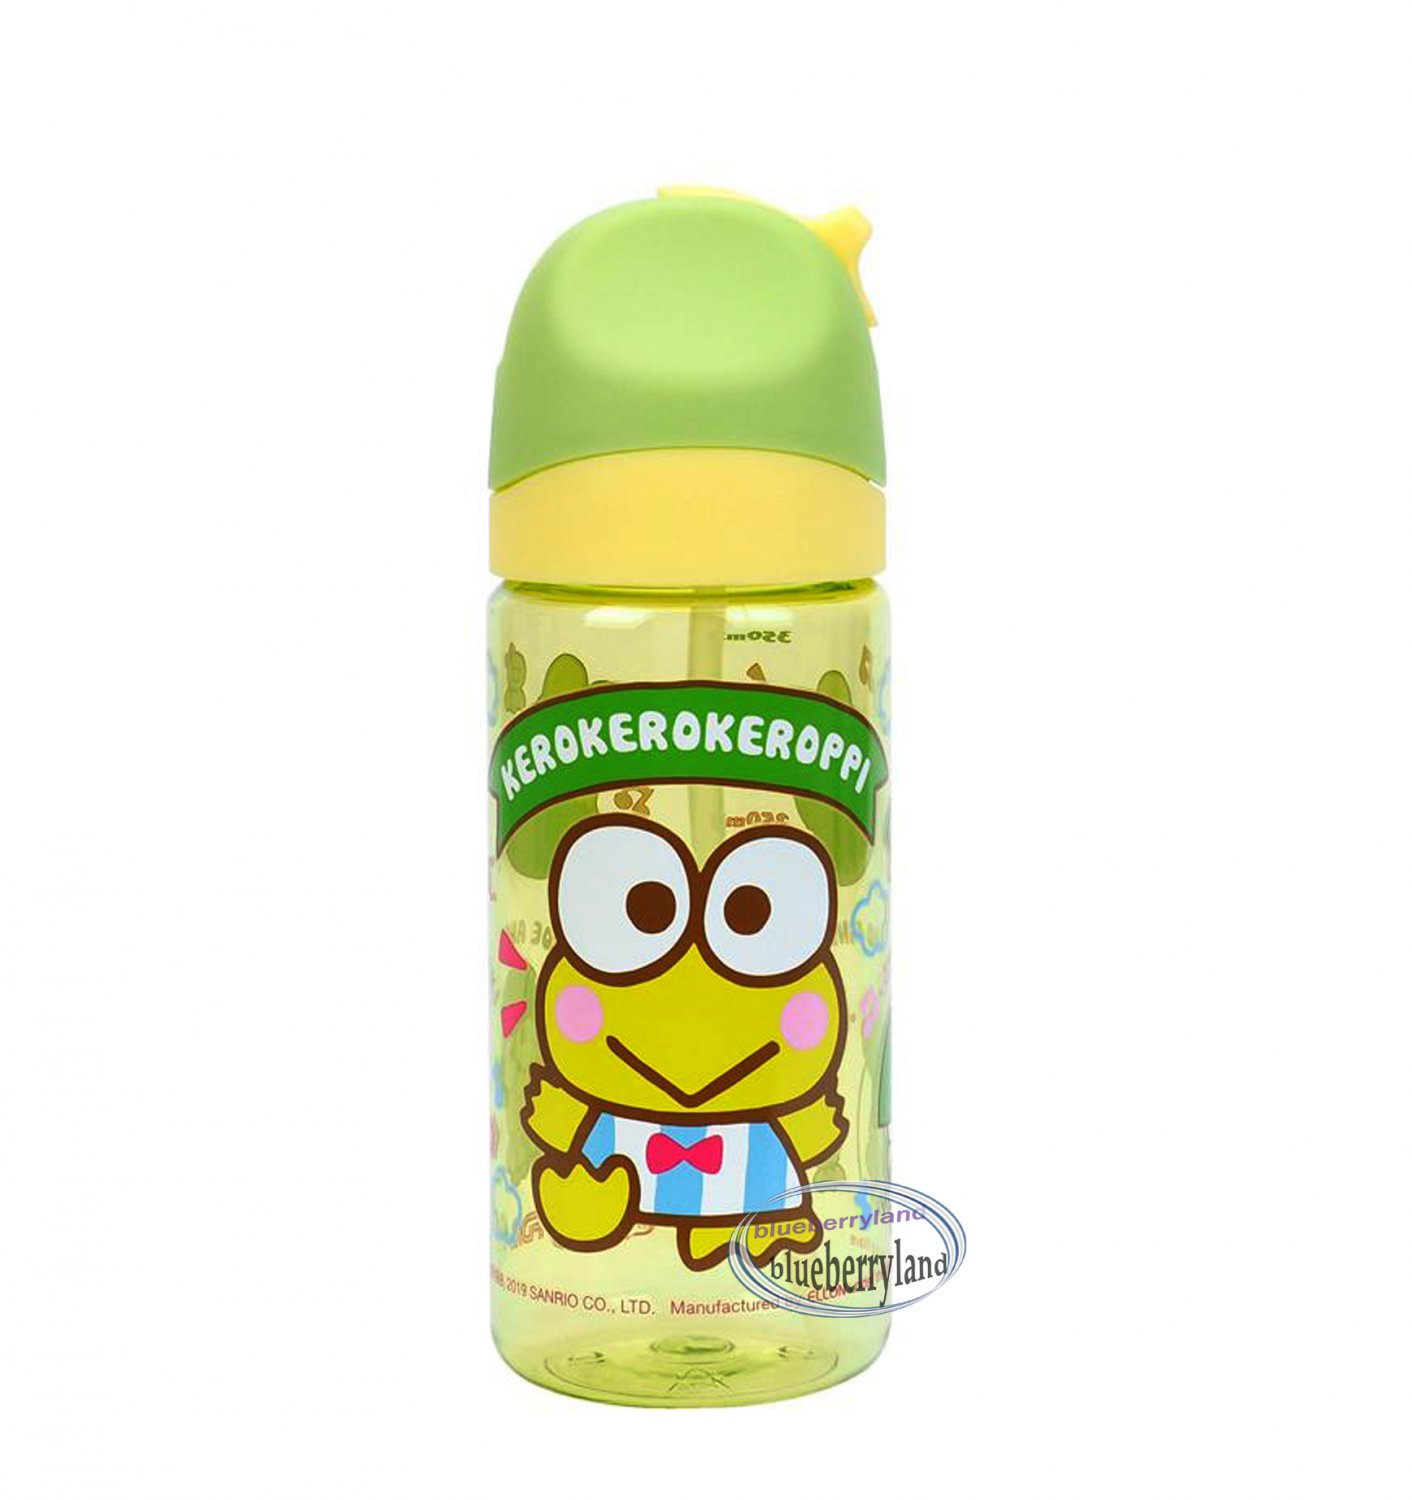 Sanrio Kerokerokeroppi Water Bottle with straw BPA Free drinkware Juice container 350ml P9